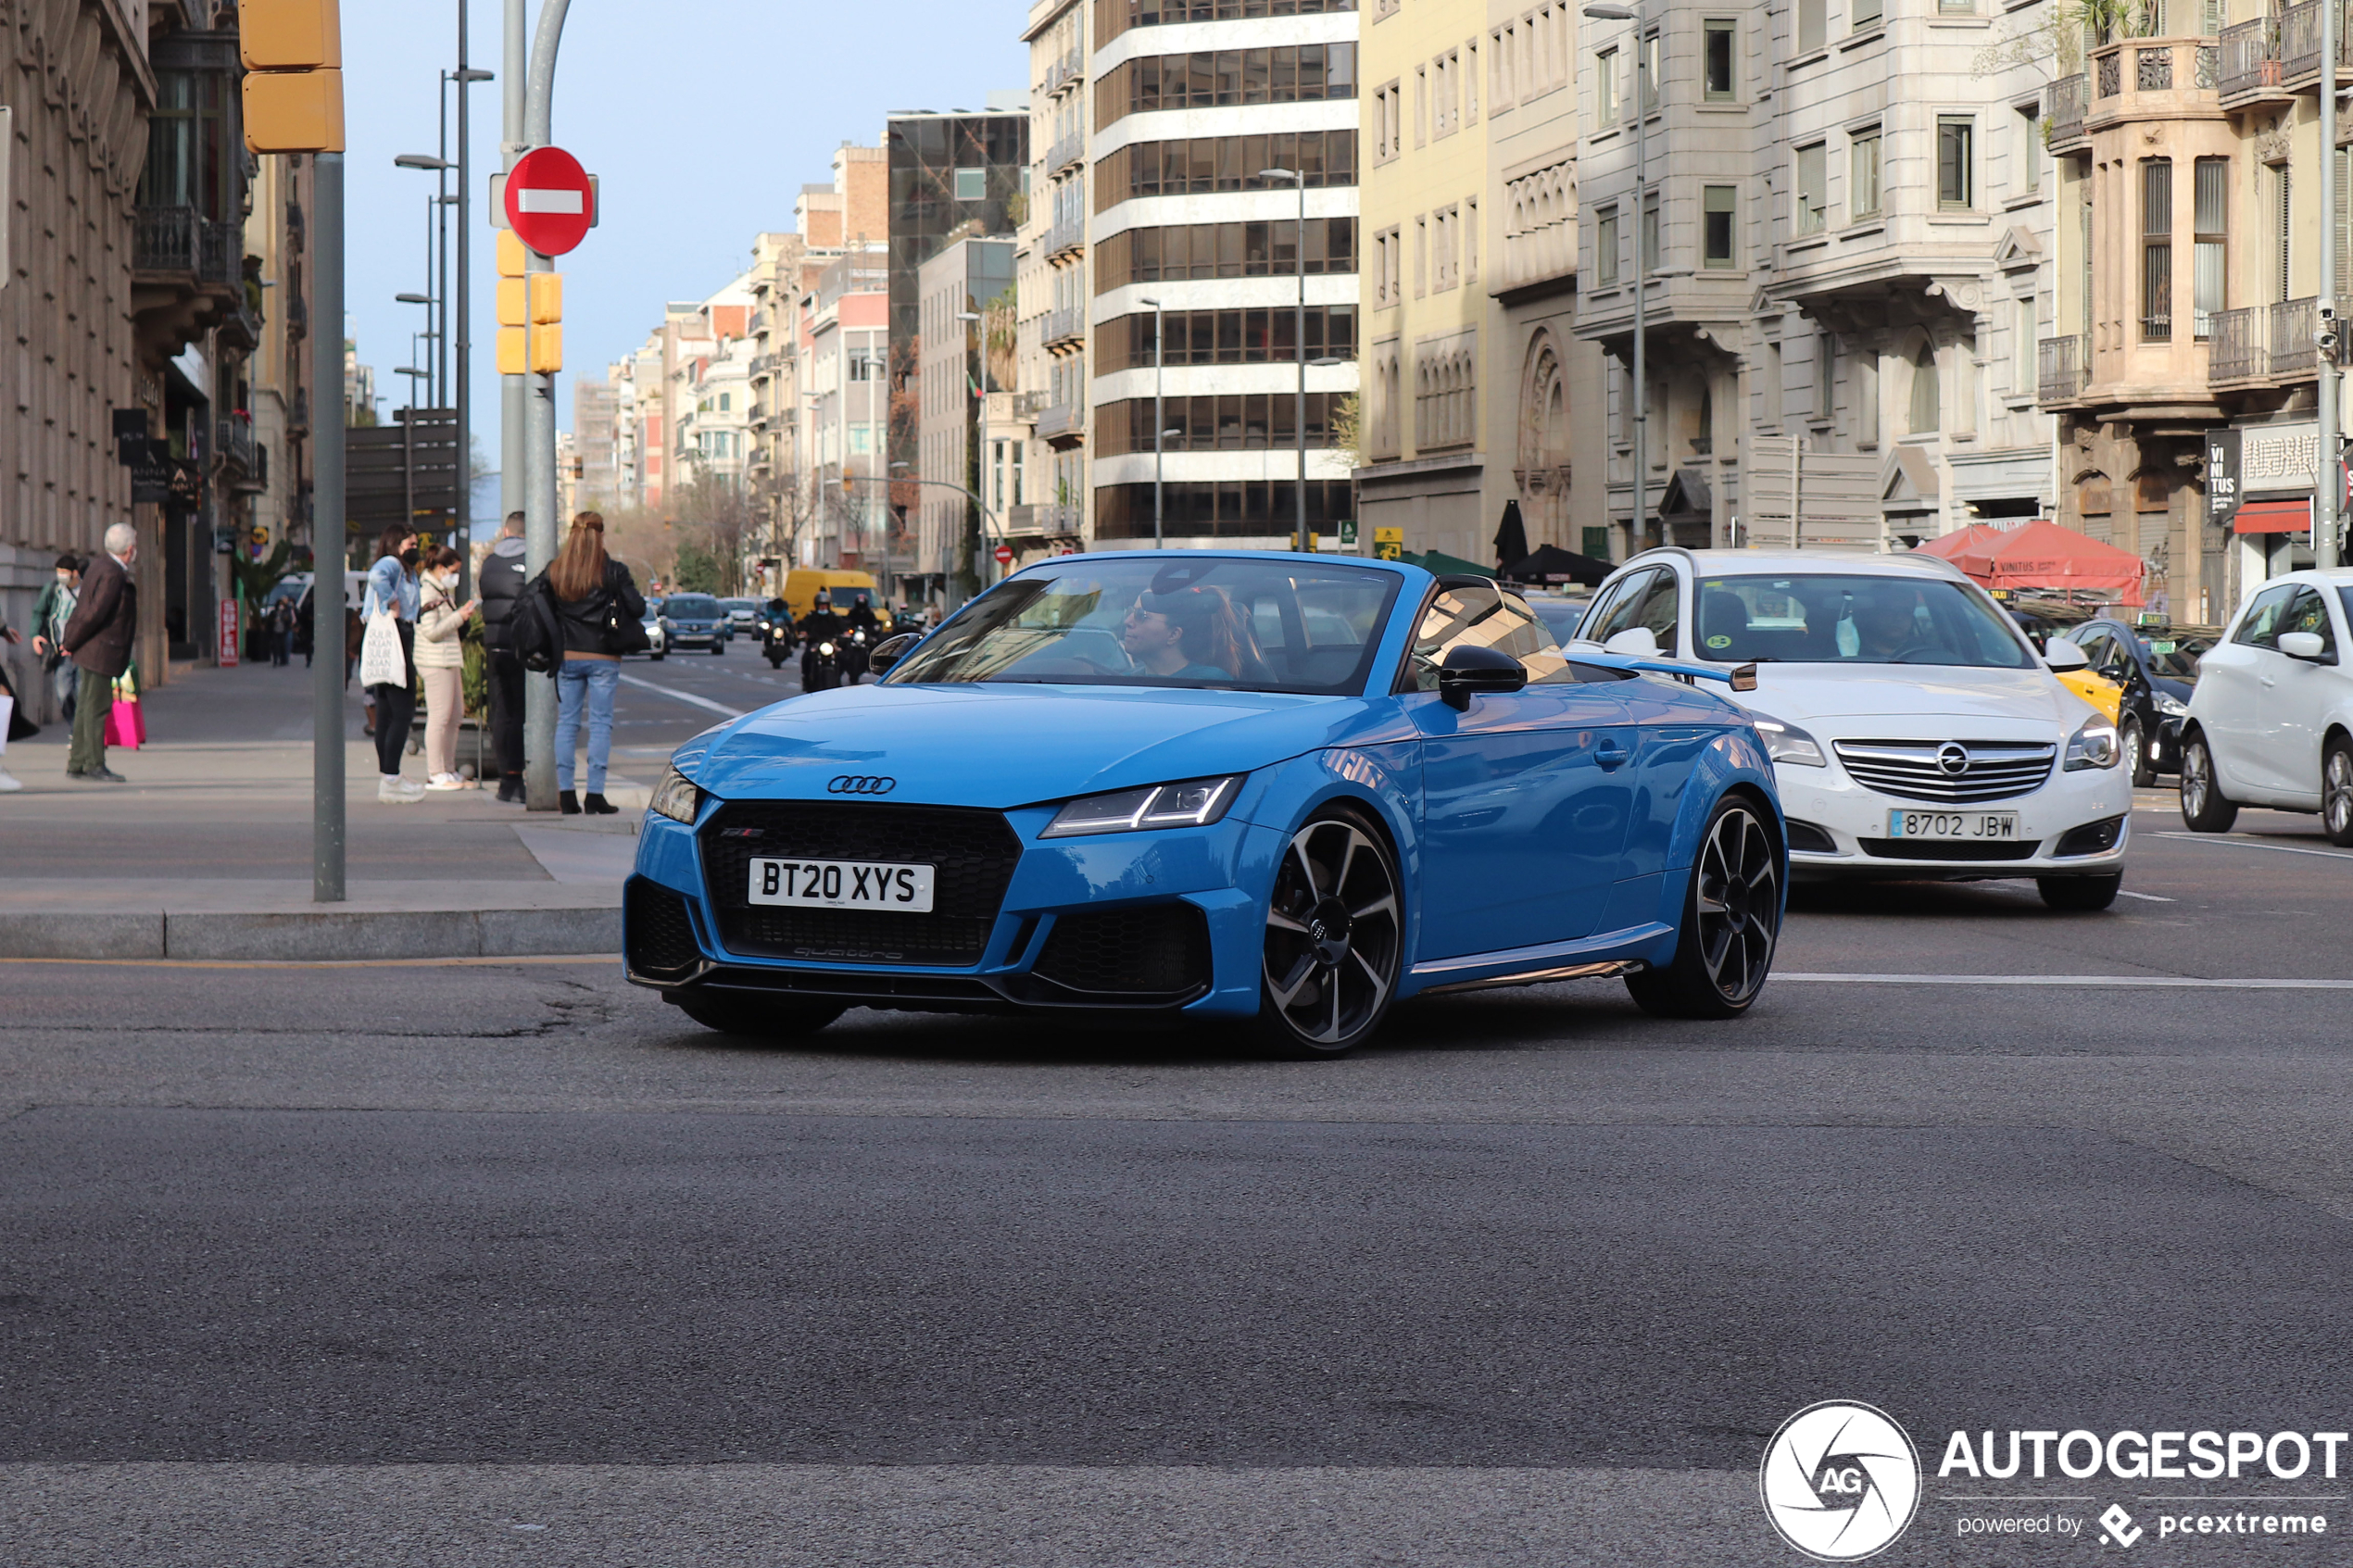 Perfect voor de vriendin: Audi TT RS Roadster